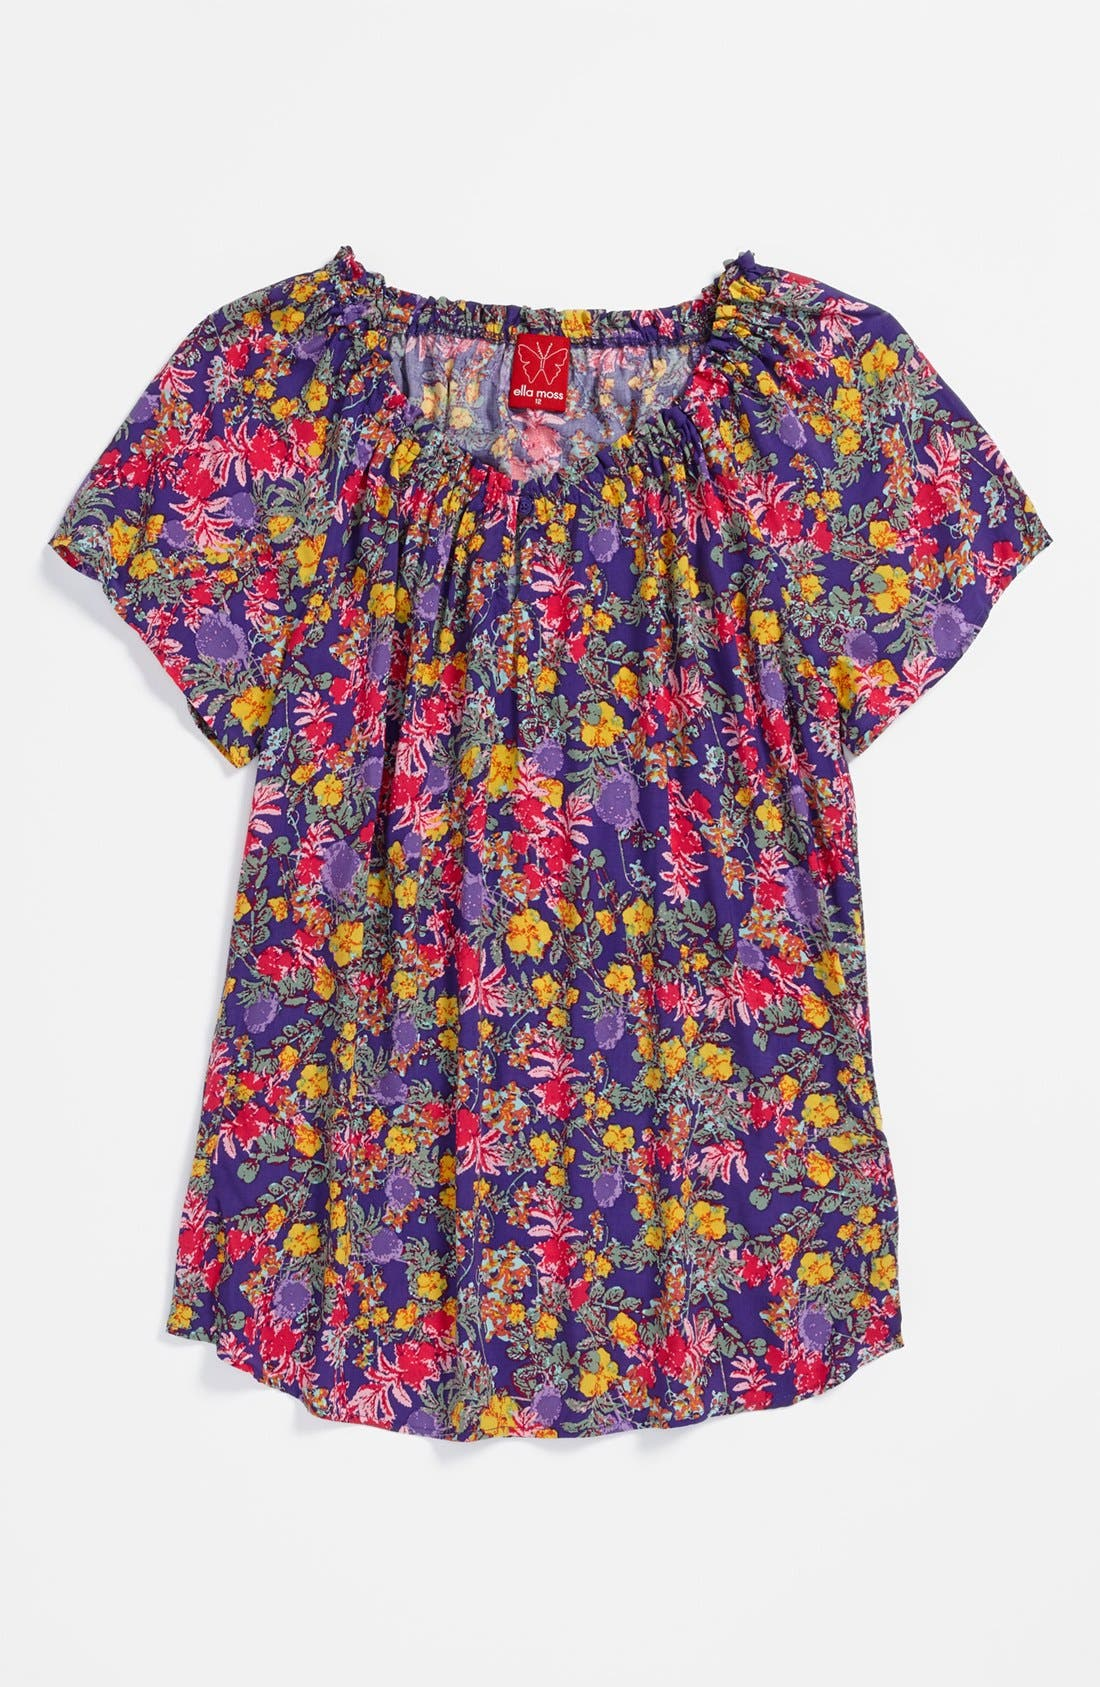 Alternate Image 1 Selected - Ella Moss 'Vineyard' Floral Top (Big Girls)